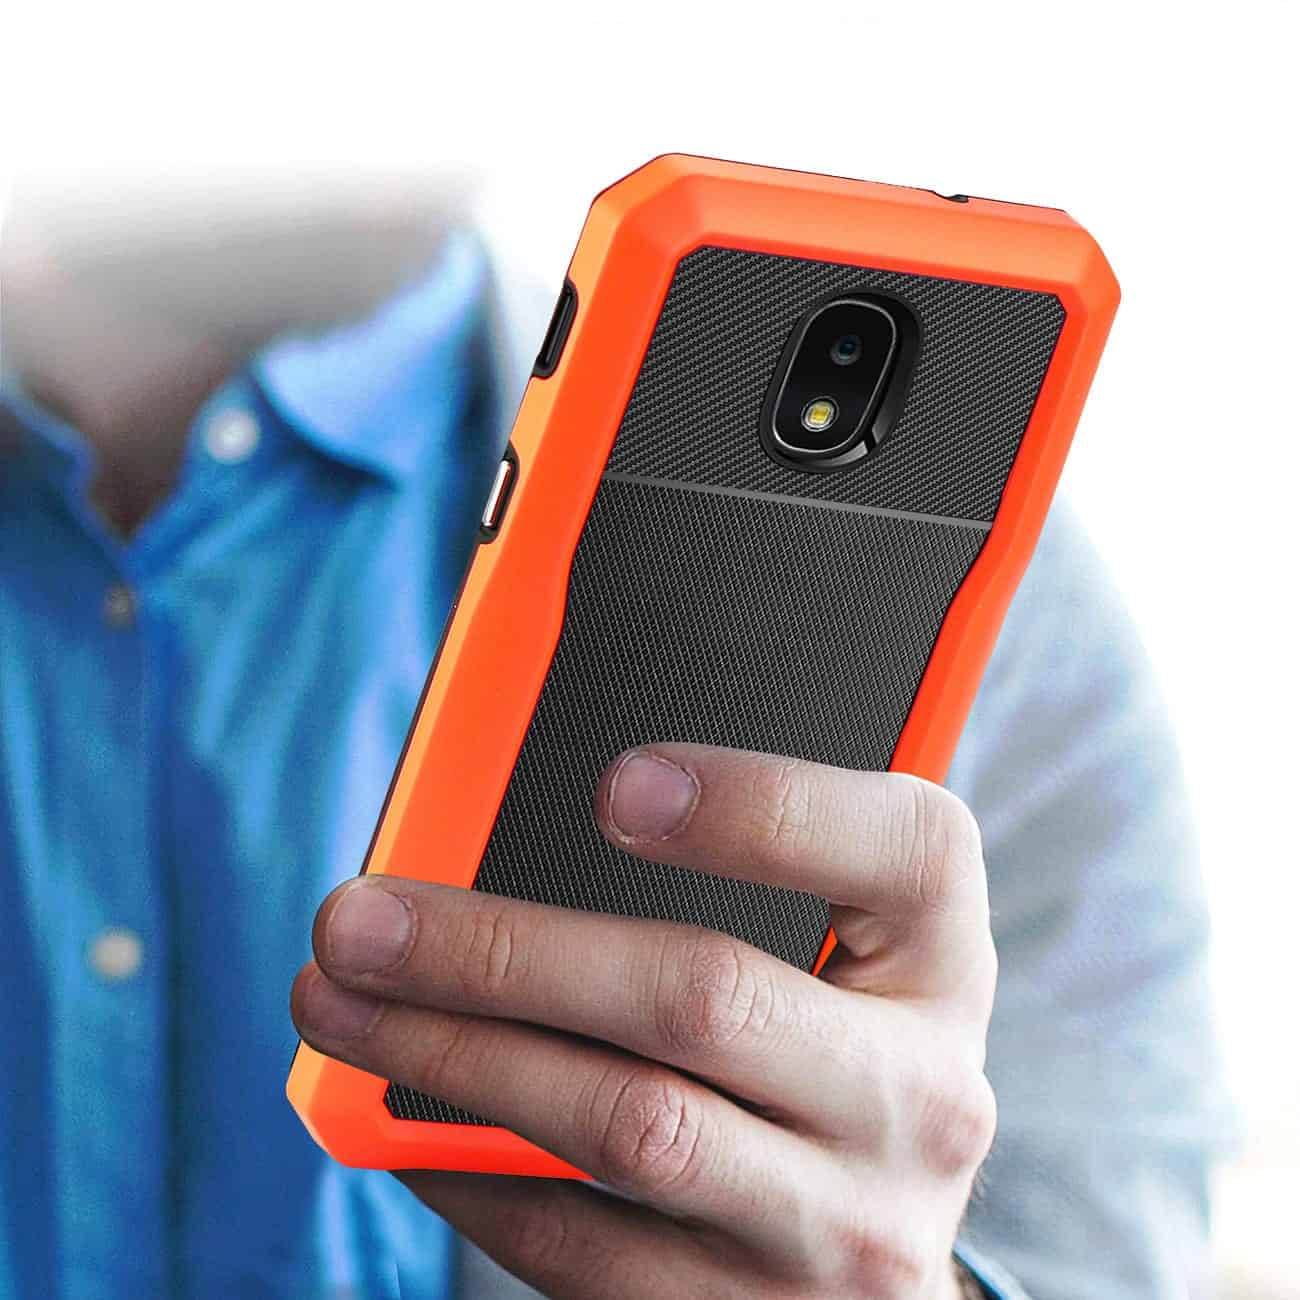 SAMSUNG GALAXY J3 (2018) Full Coverage Shockproof Case In Orange